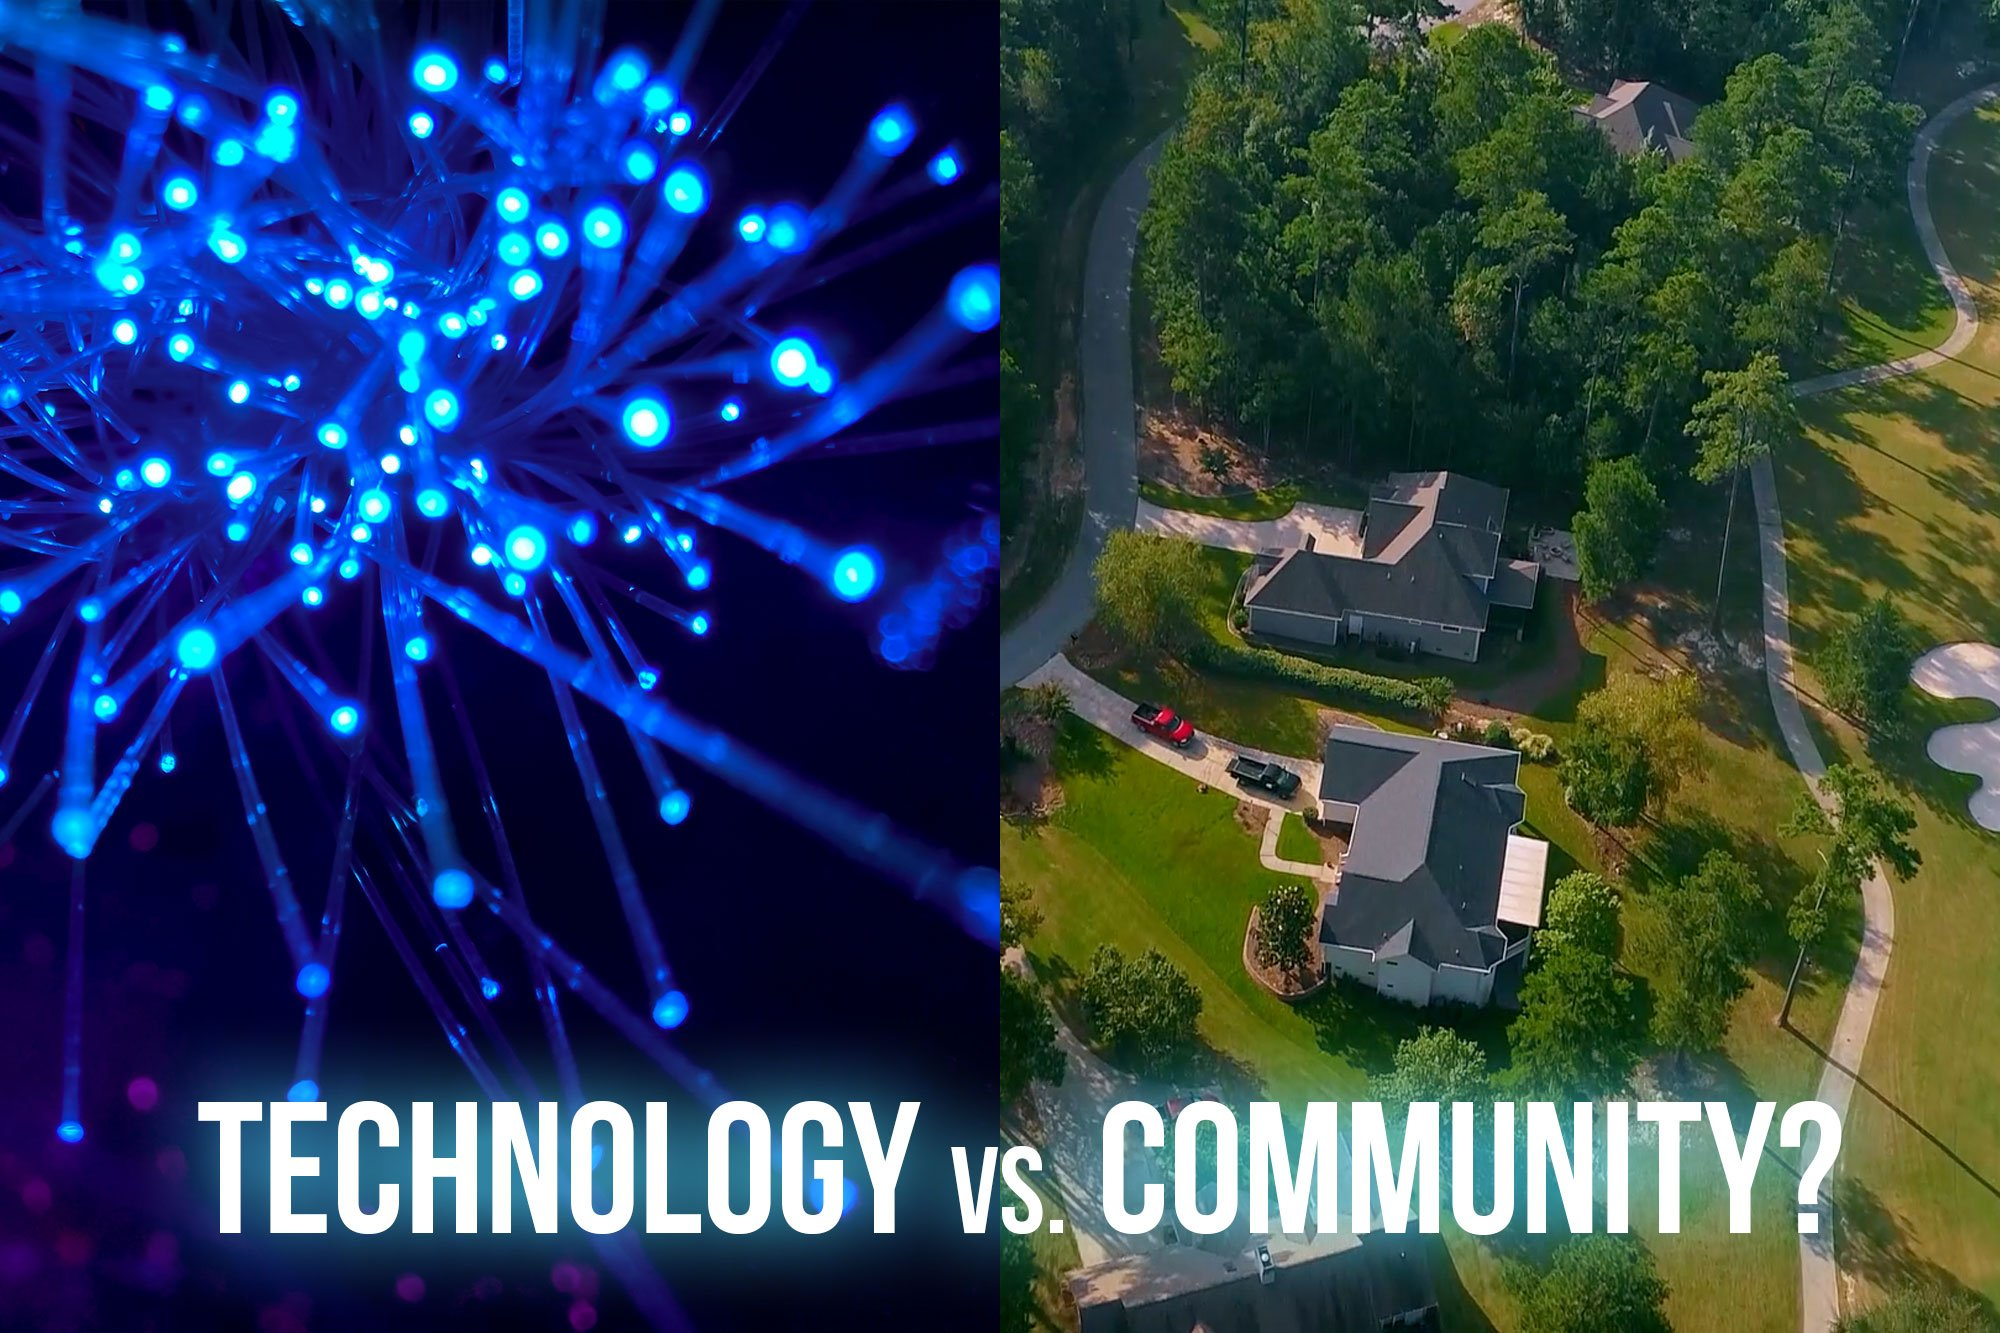 Technology vs. Community: Making the Right Choice On Internet Service